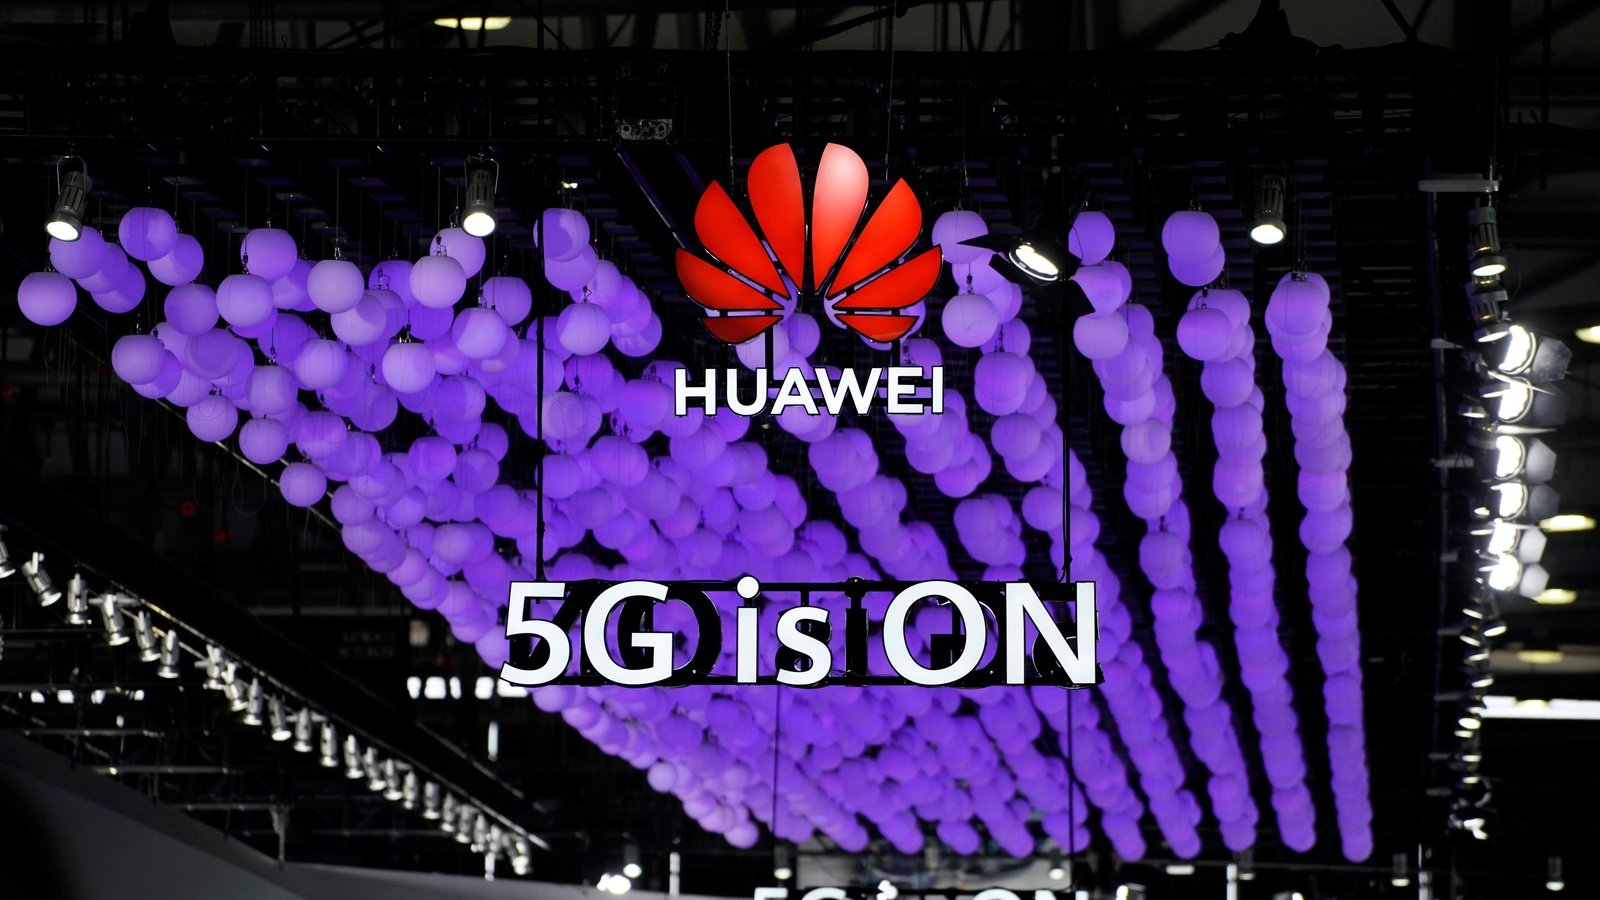 China's Huawei Is Winning The 5G Race. Here's What The United States Should Do To Respond